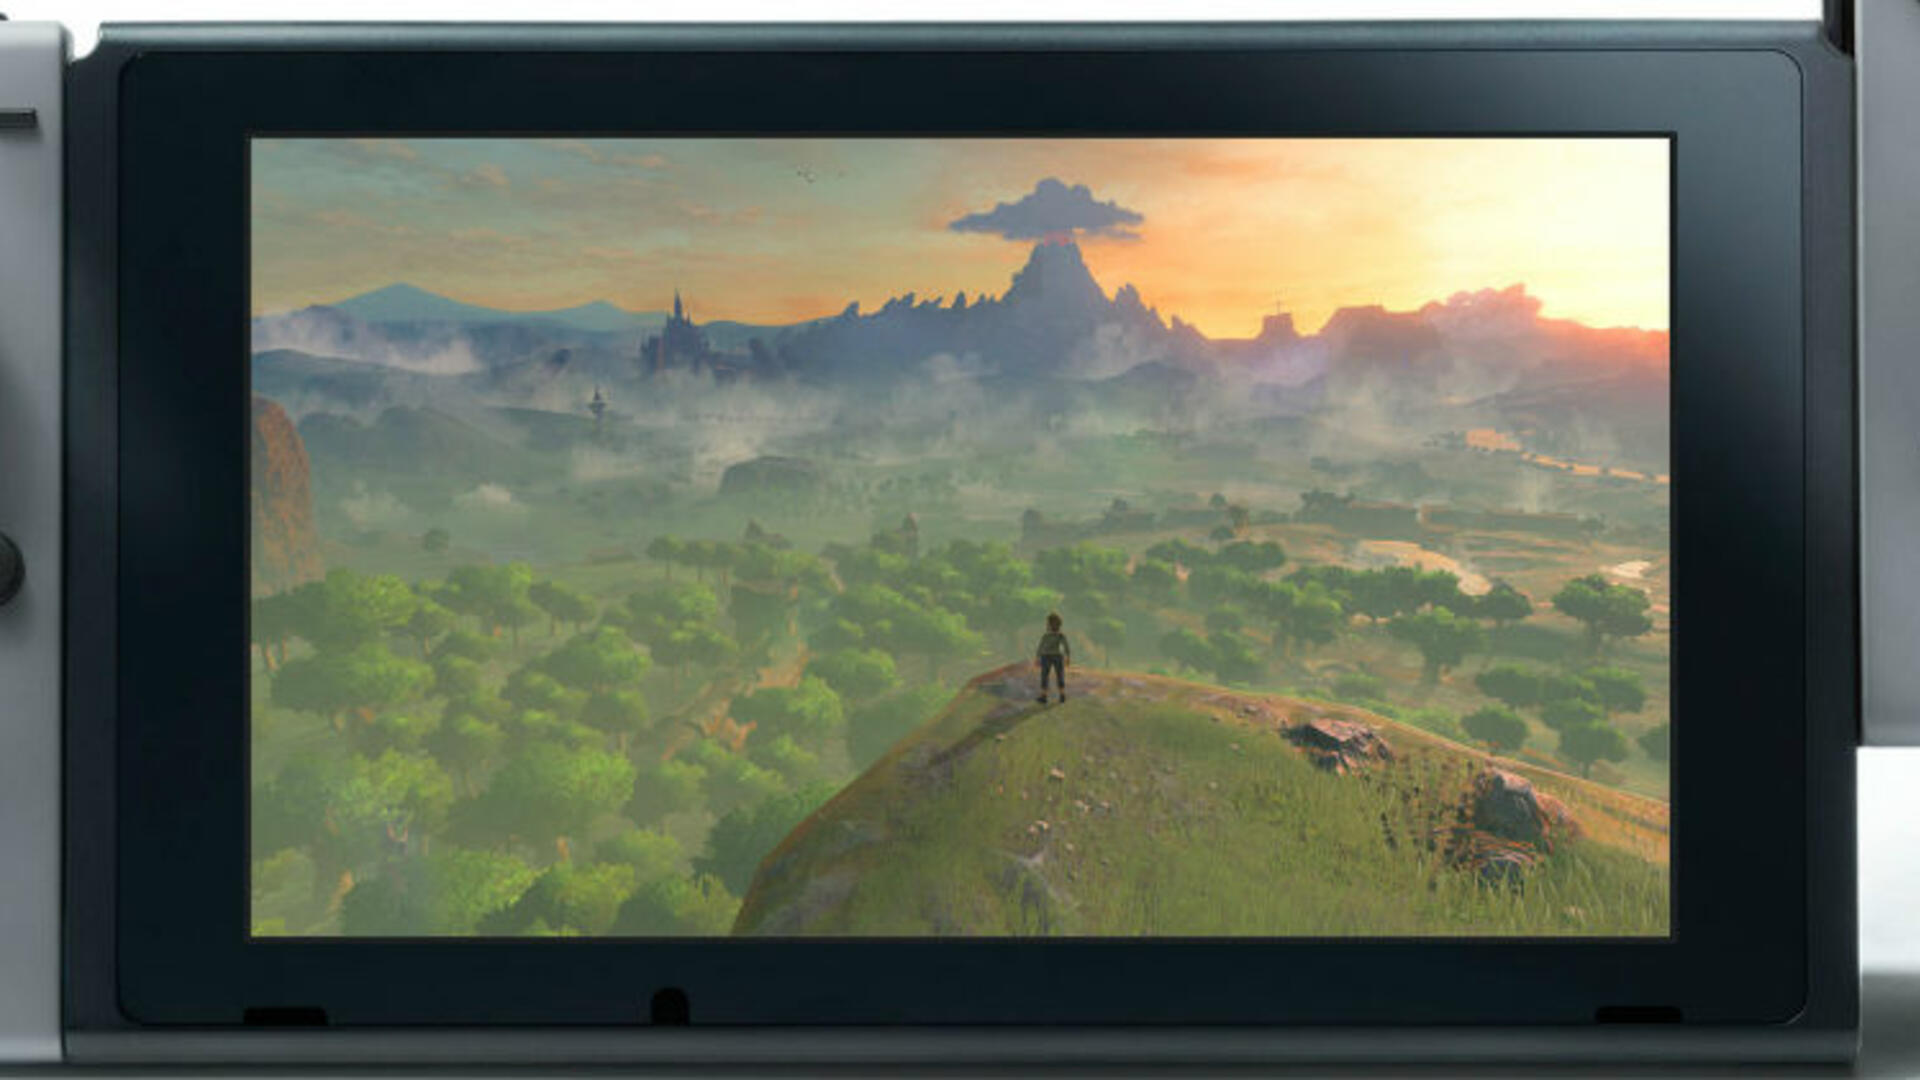 Worried That Games on the Nintendo Switch Look Like Wii U Games? Don't Be